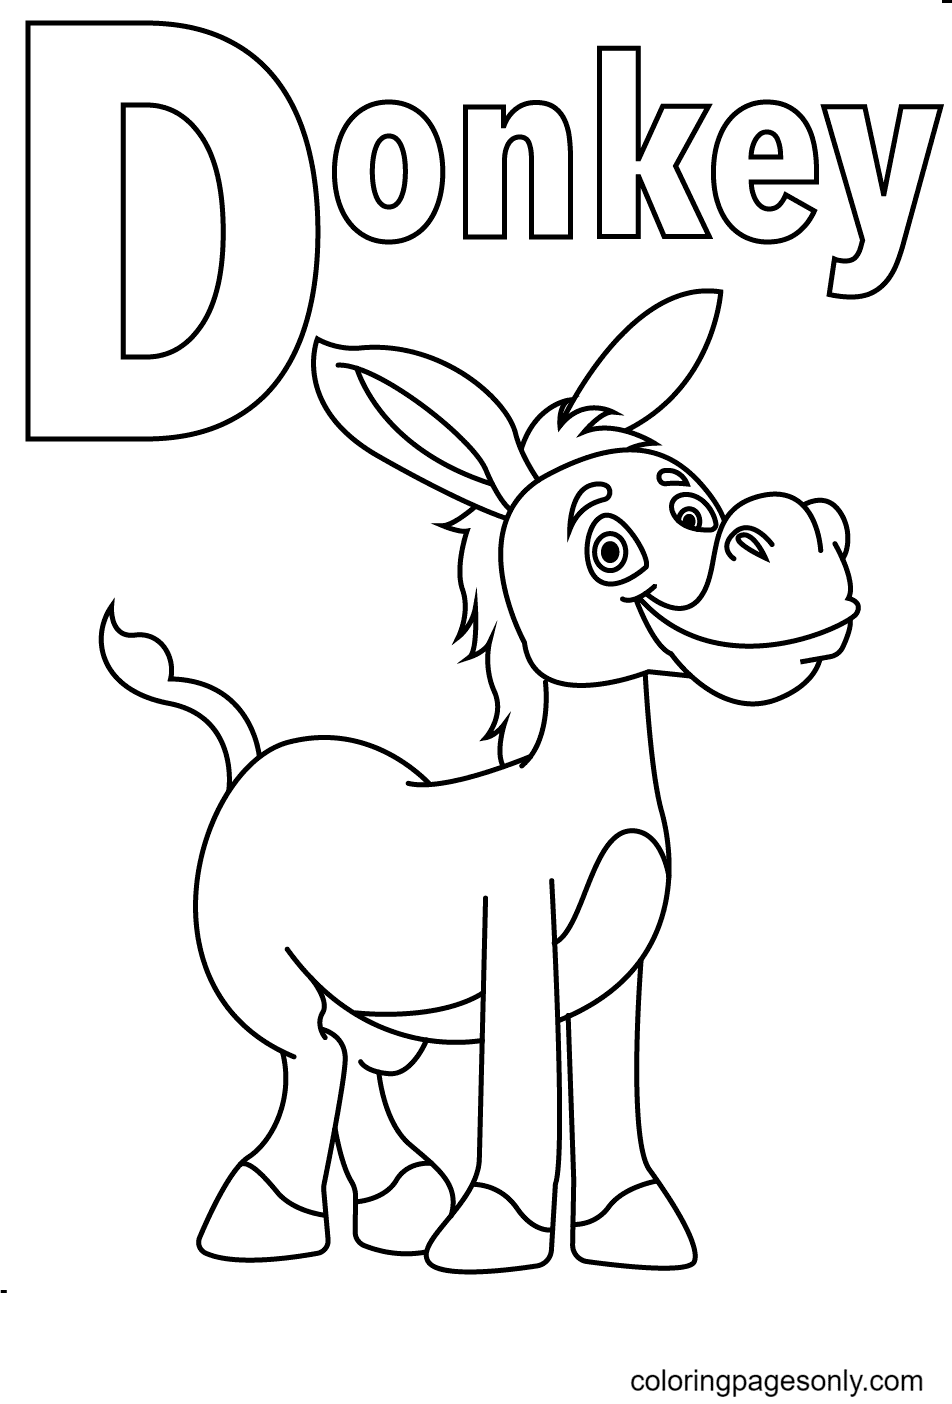 Letter D is for Donkey Coloring Page